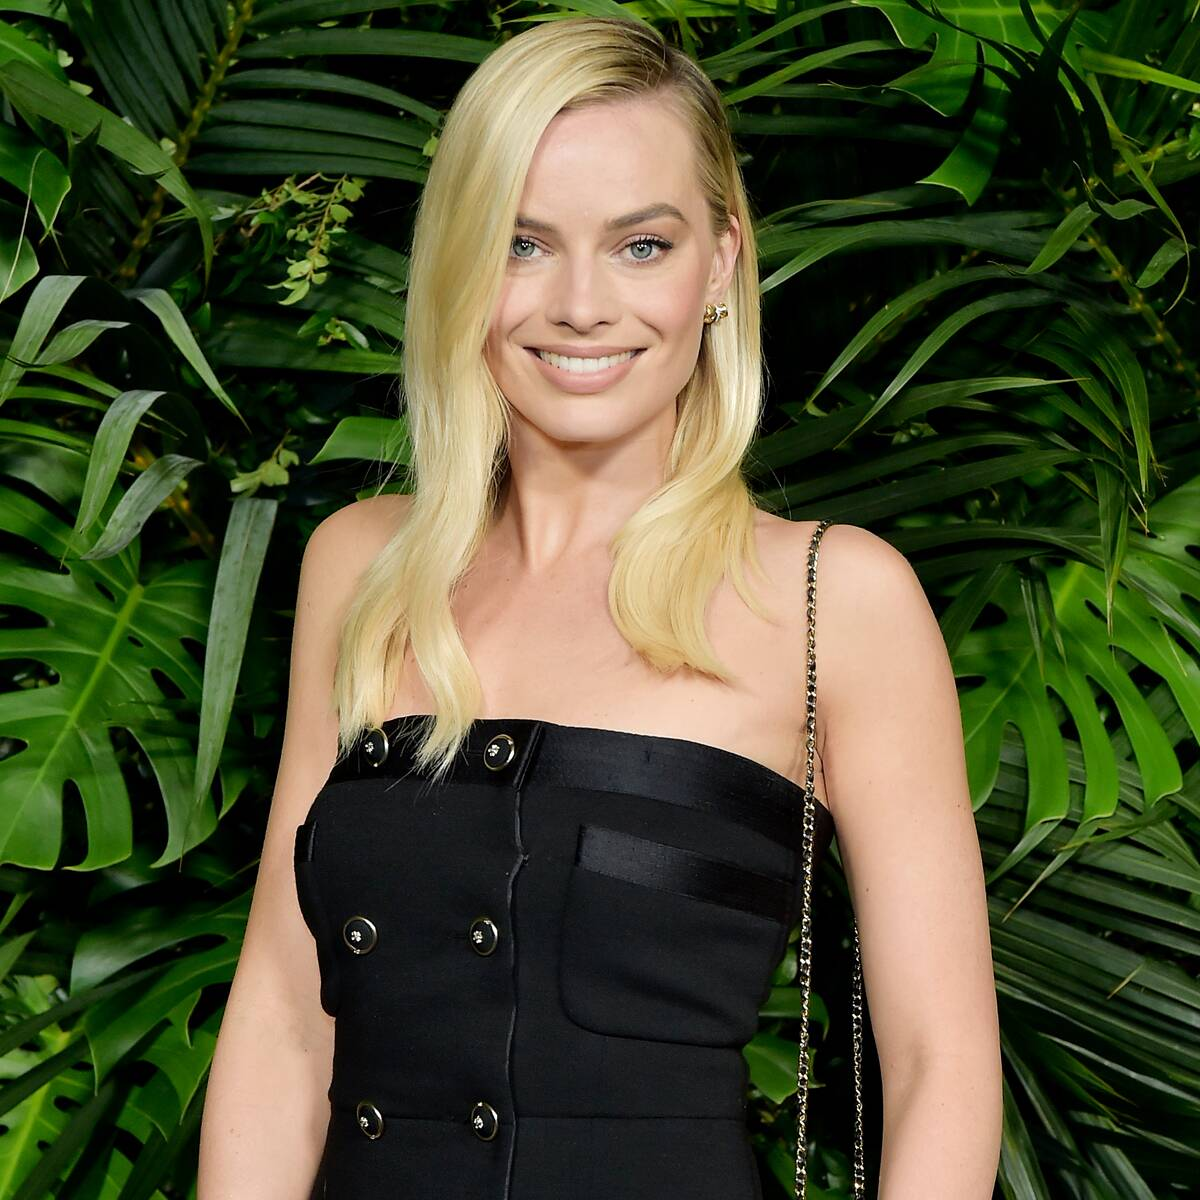 Margot Robbie Looks Unrecognizable With Jet Black Hair on the Set of Her New Movie